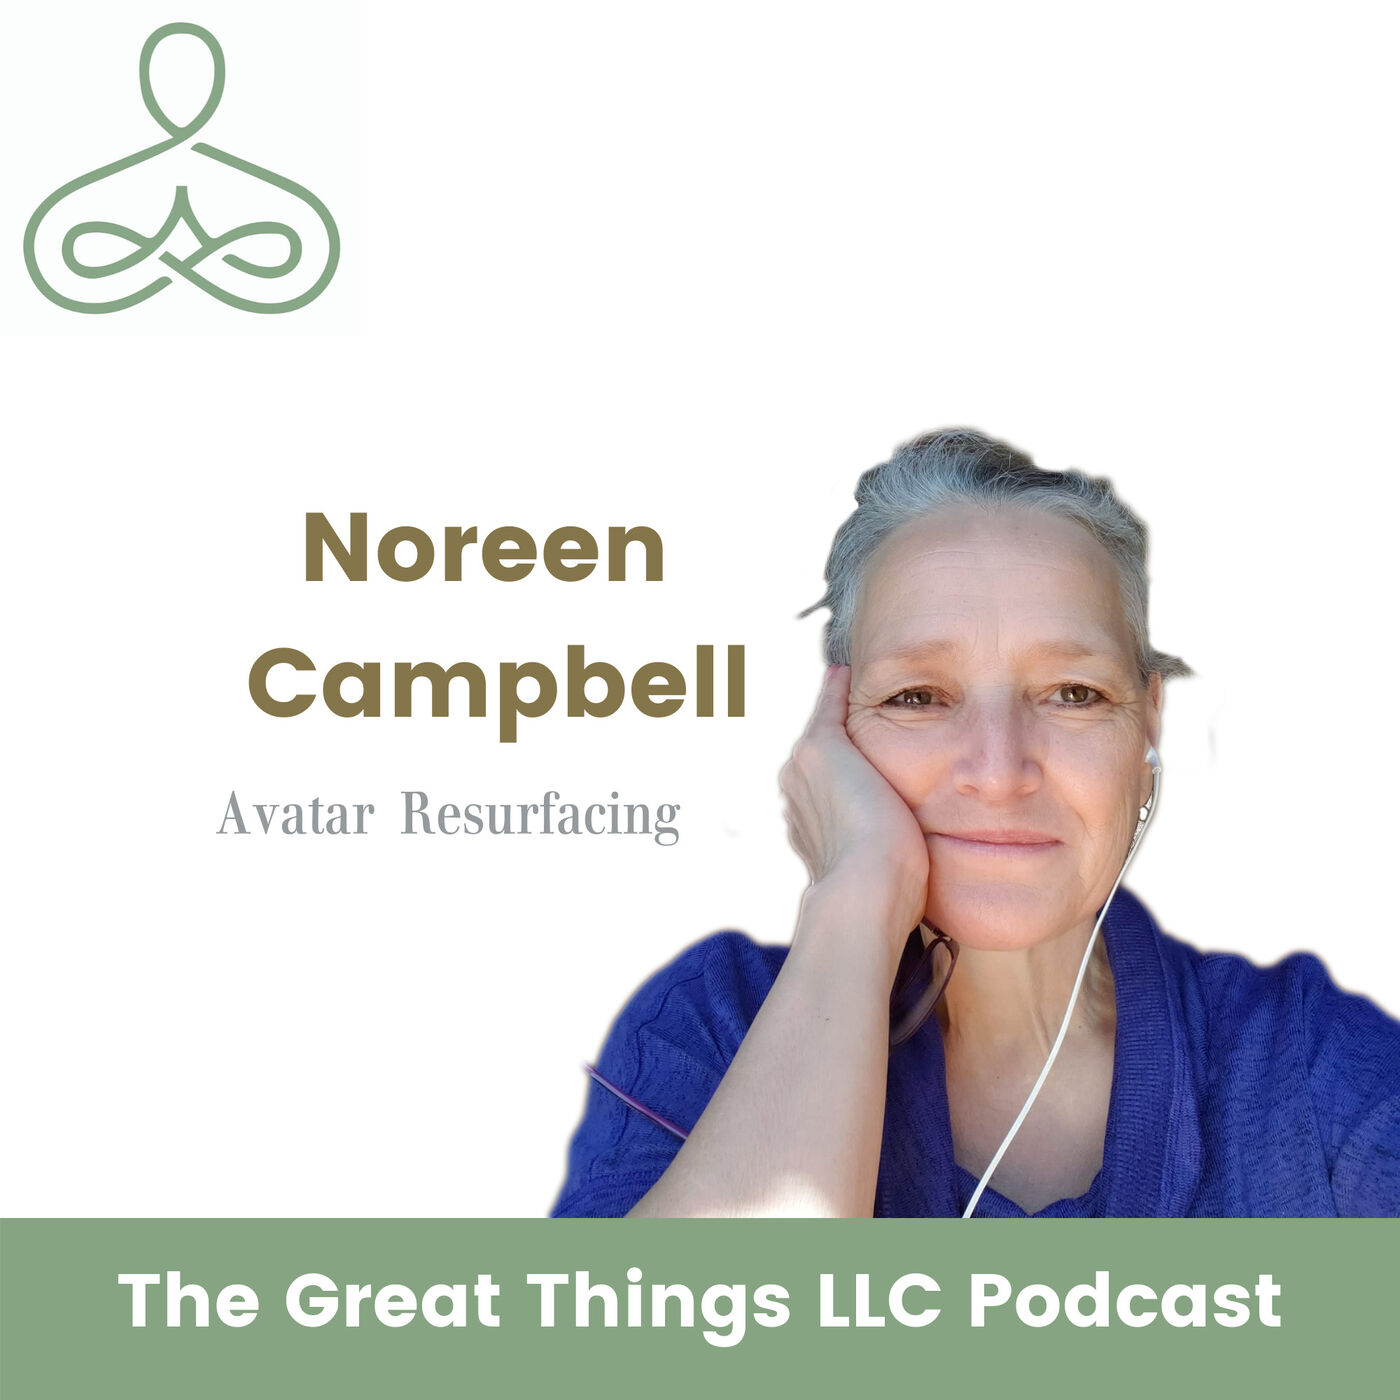 Noreen Campbell - Family Business, Growth, Transition,  Avatar & The Resurfacing East Coast Course